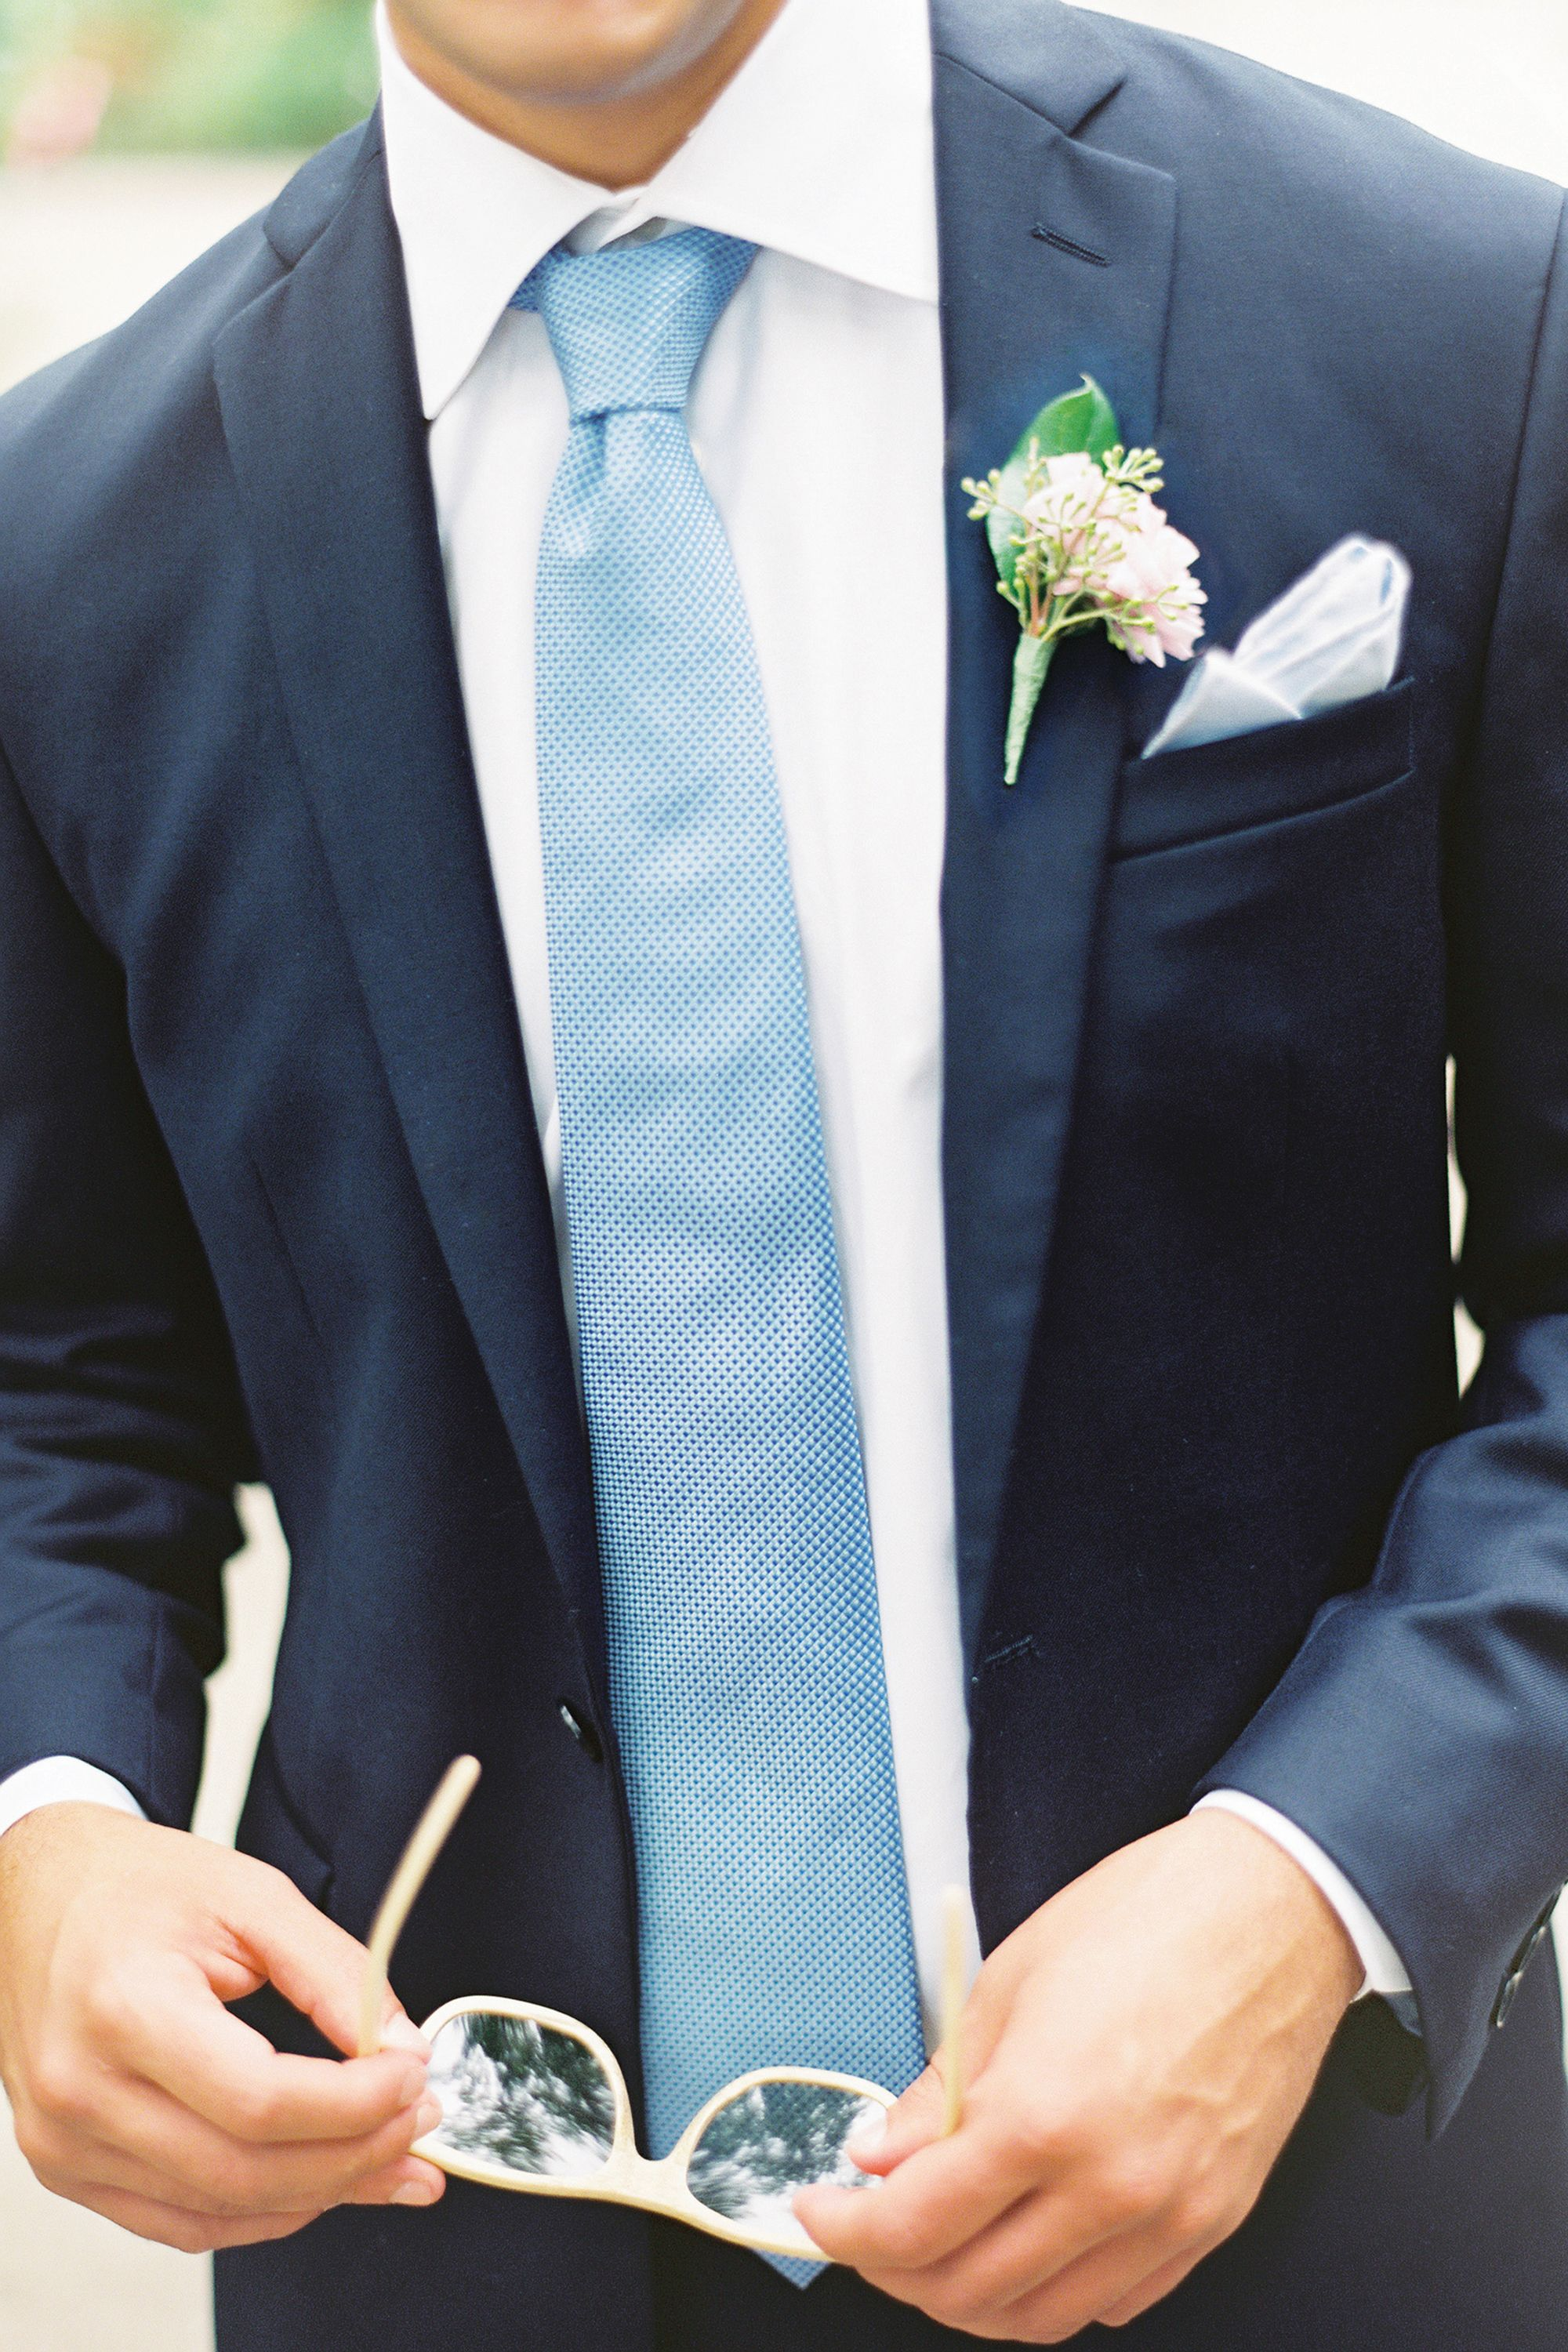 6 Fashion Rules for Grooms | Pinterest | Grooms, Wedding and Weddings